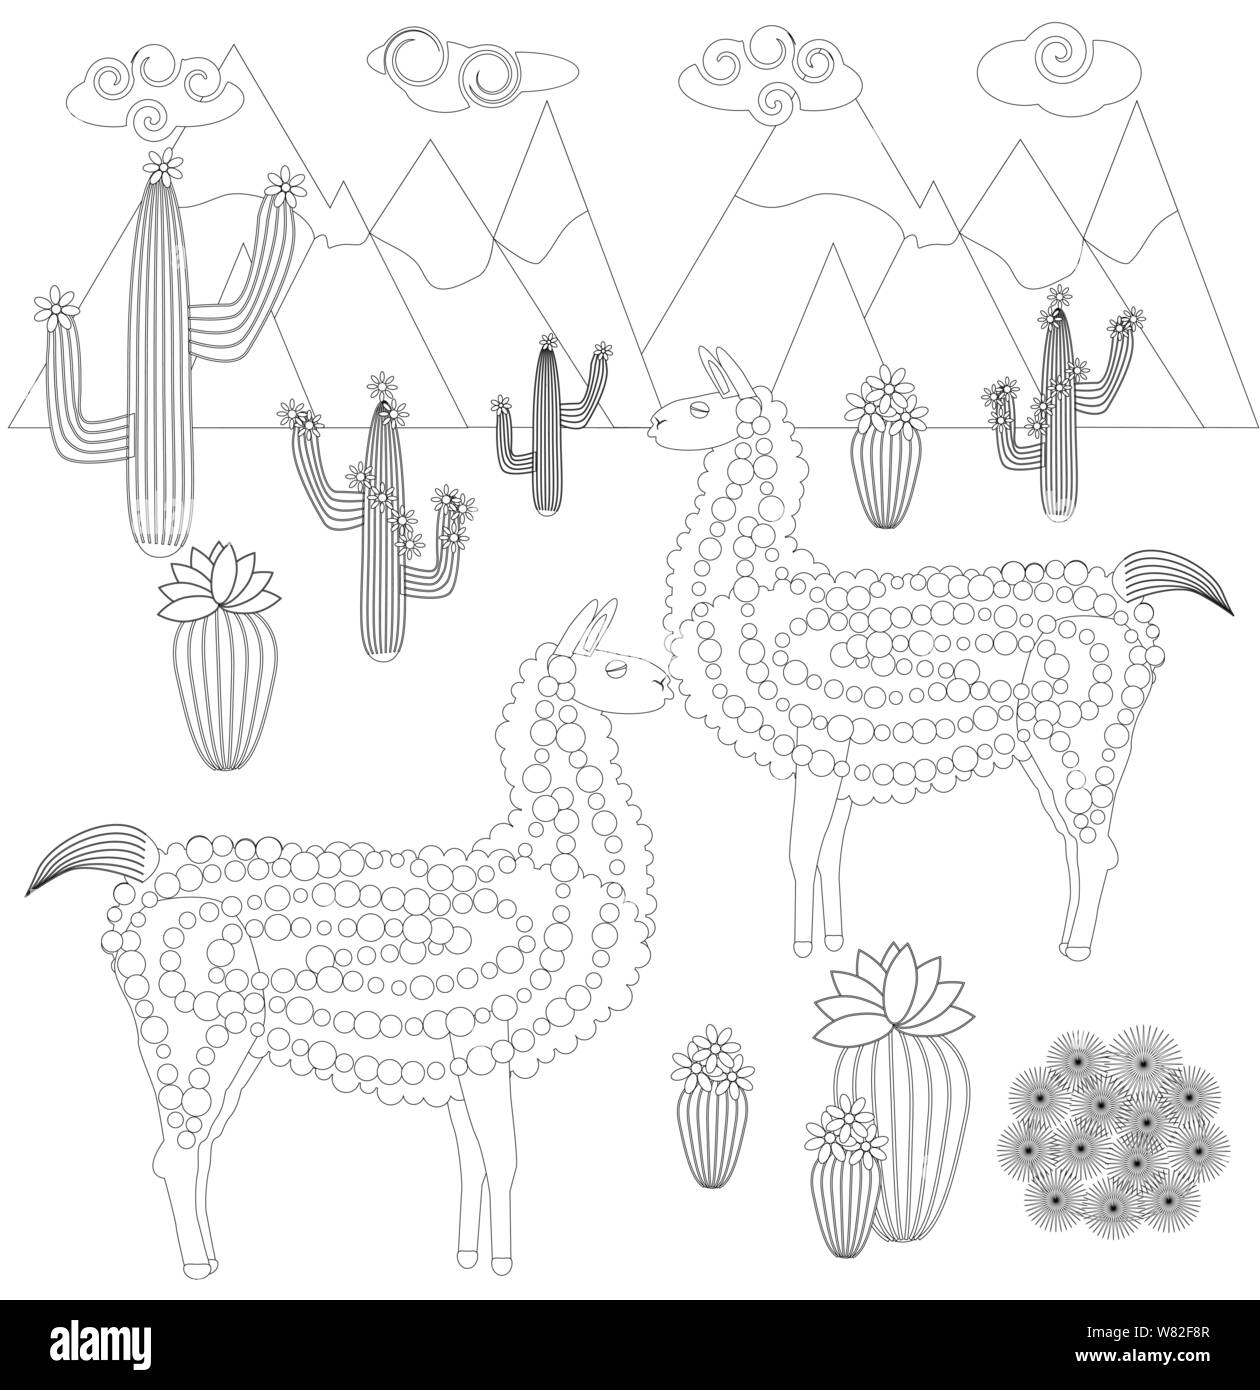 Lama Coloring Images, Stock Photos & Vectors | Shutterstock | 1390x1260